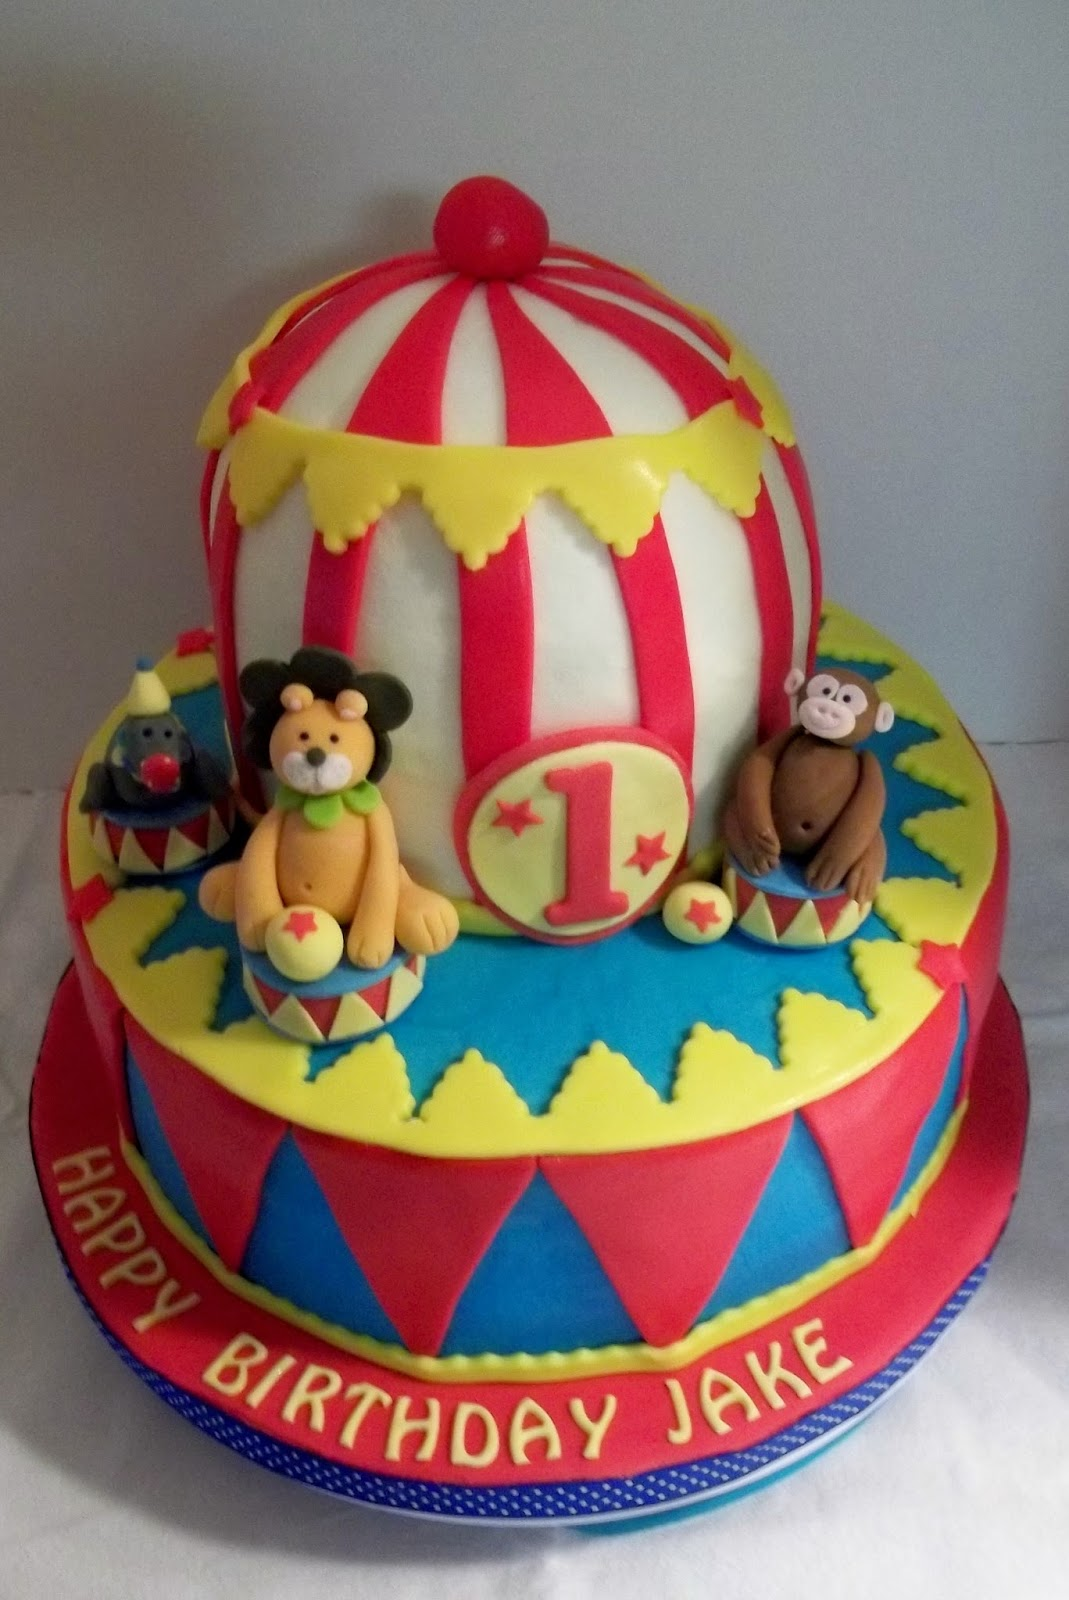 Bobbies Cakes And Cookies A Circus Birthday Cake